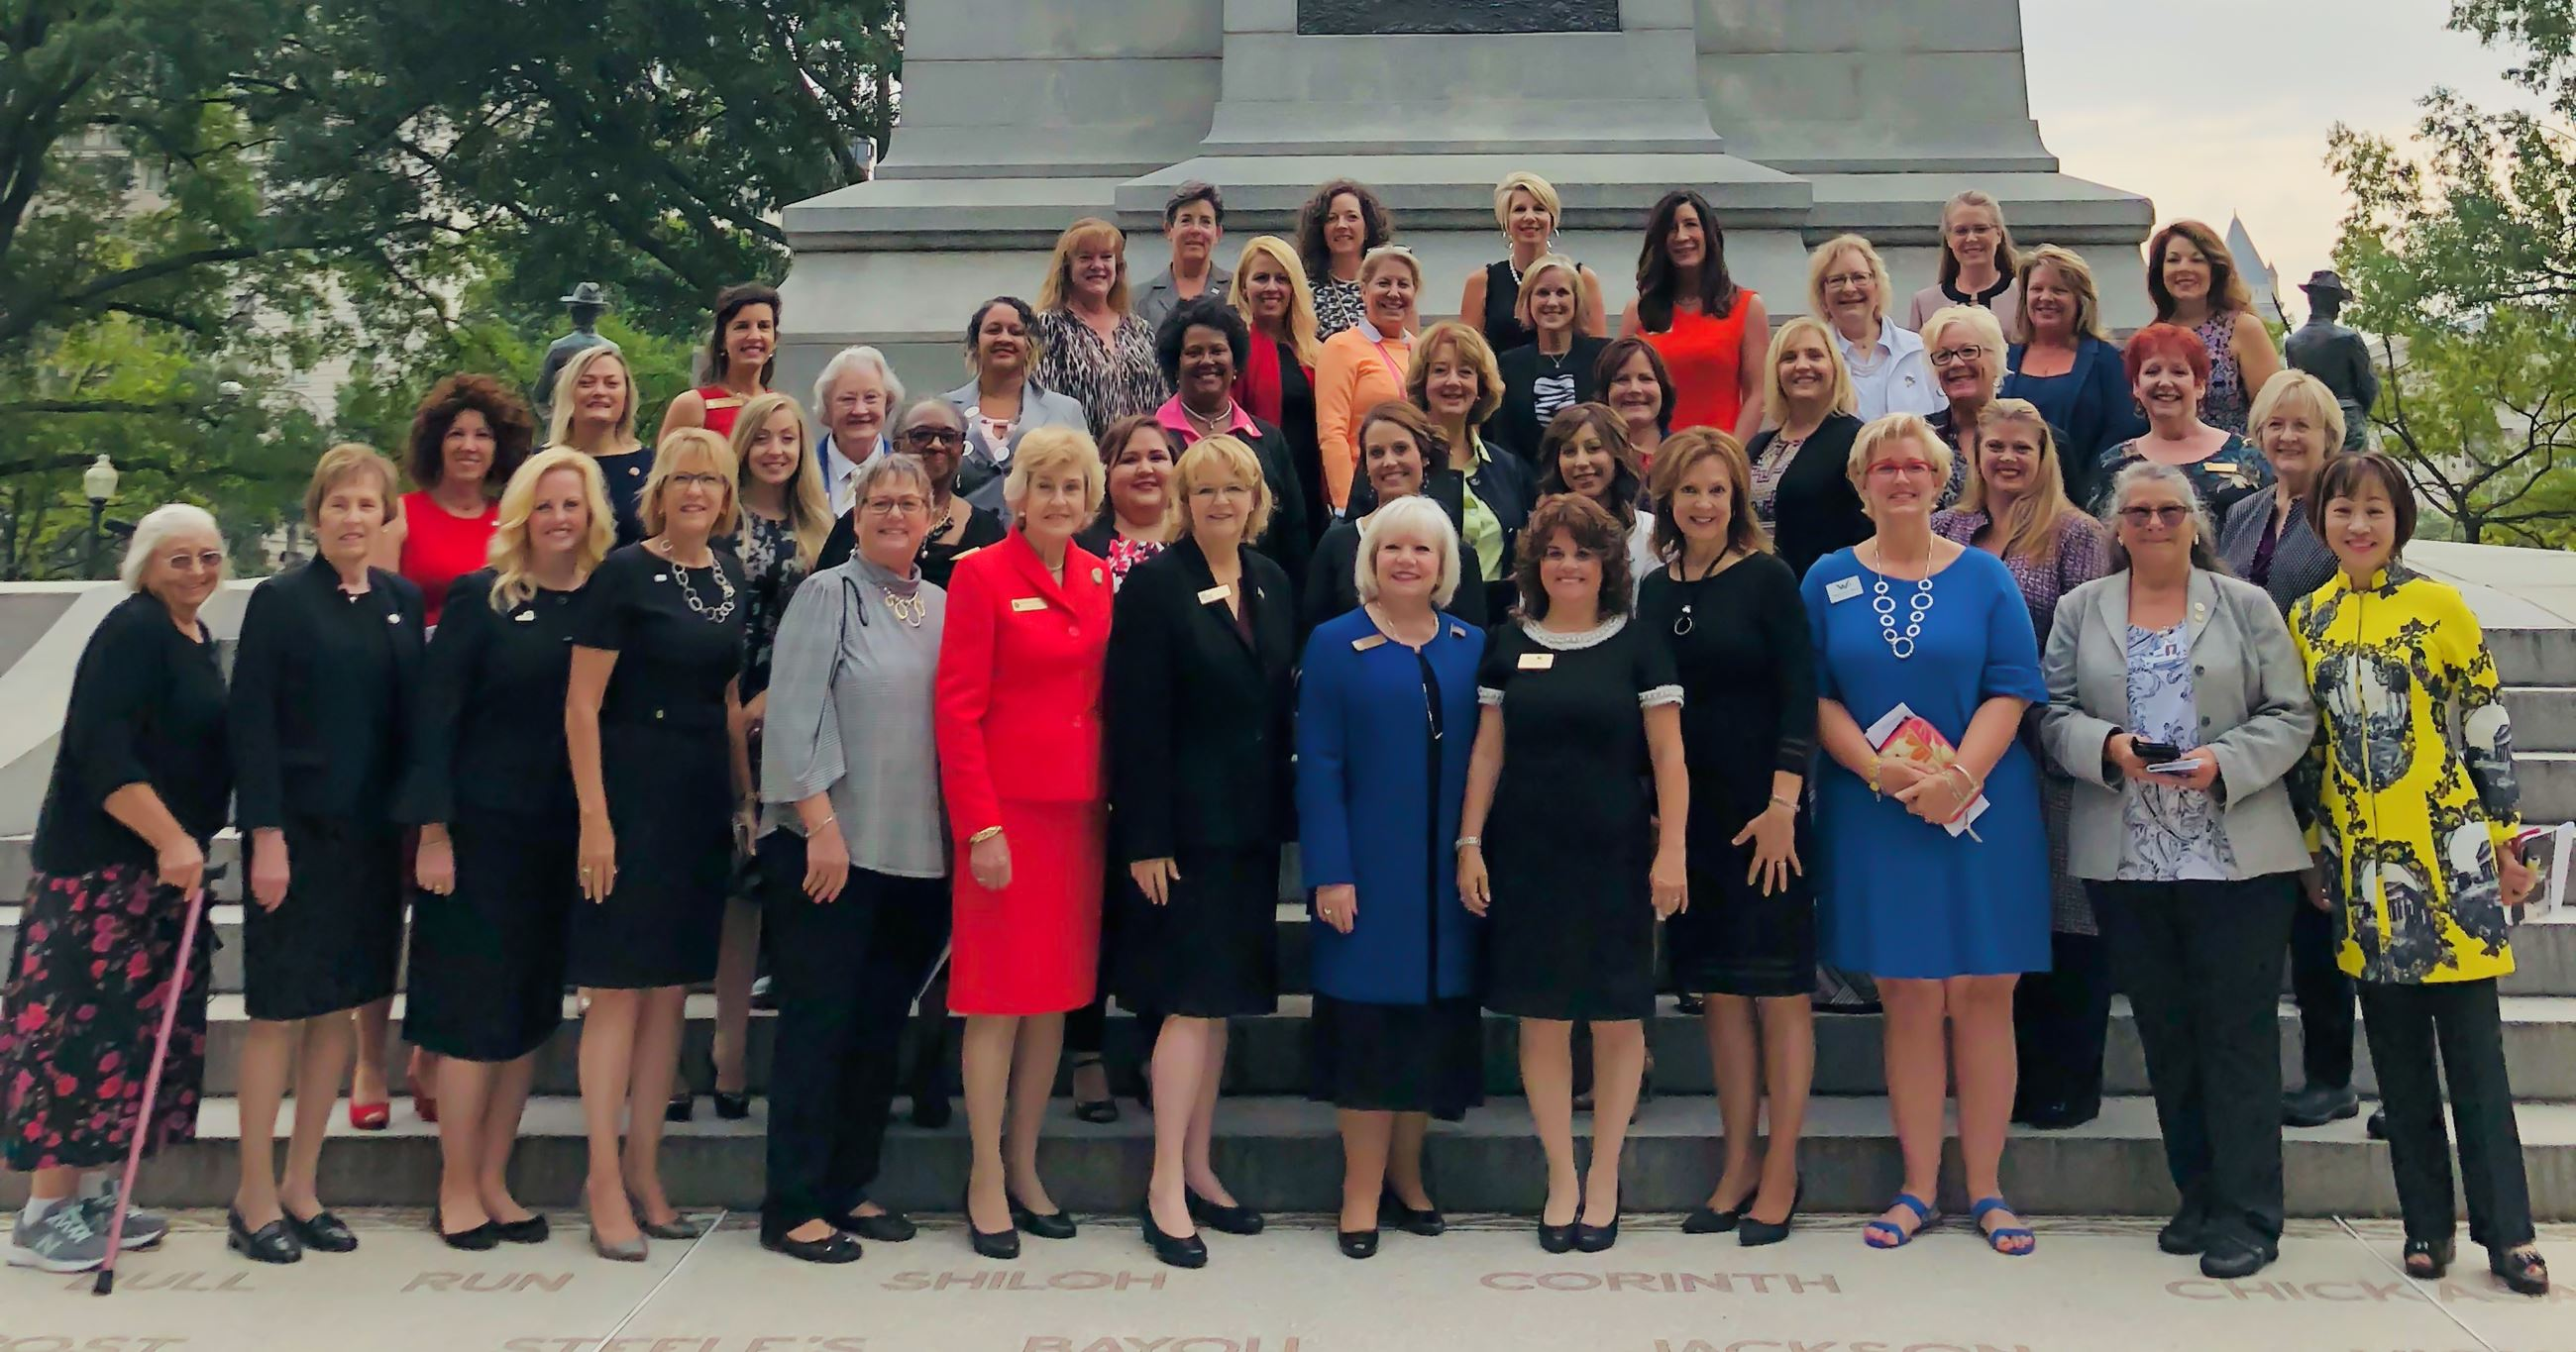 women mayors of america gathered for a picture September 20, 2018